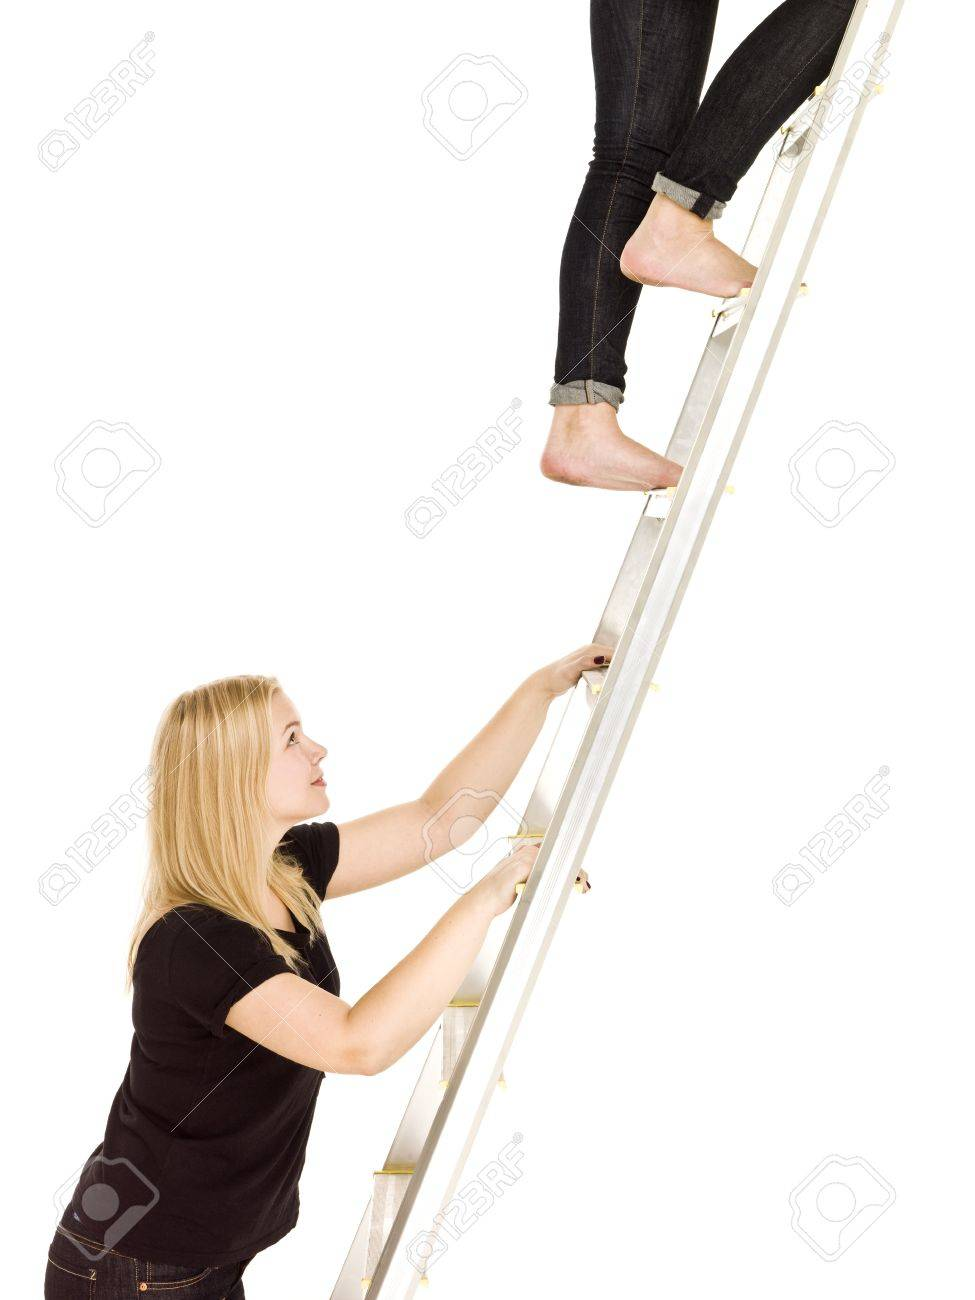 women climbing up the ladder isolated on white background stock stock photo women climbing up the ladder isolated on white background